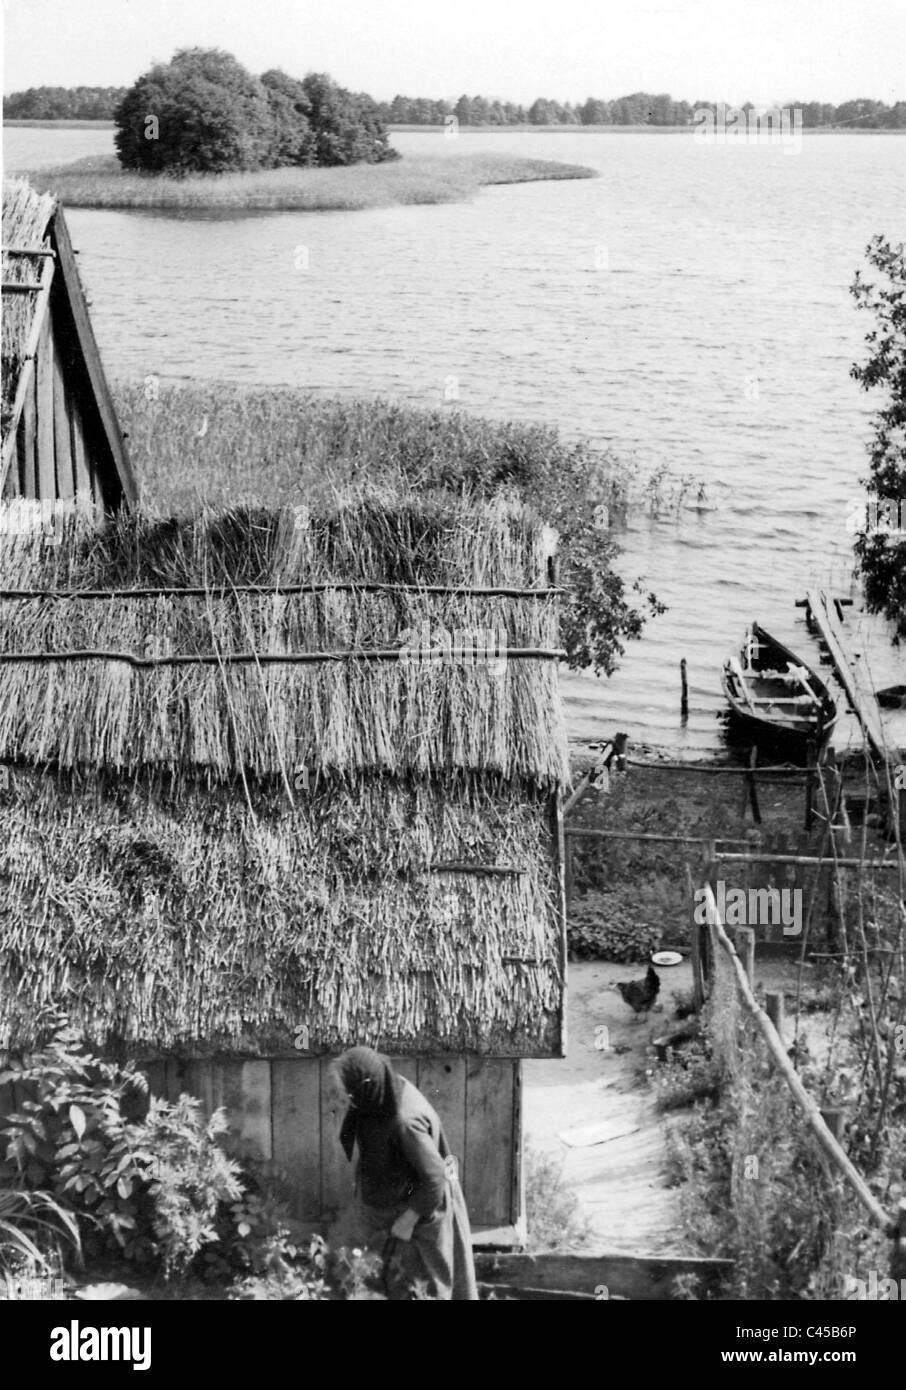 House with thatched roof on Lake Kruesten Stock Photo